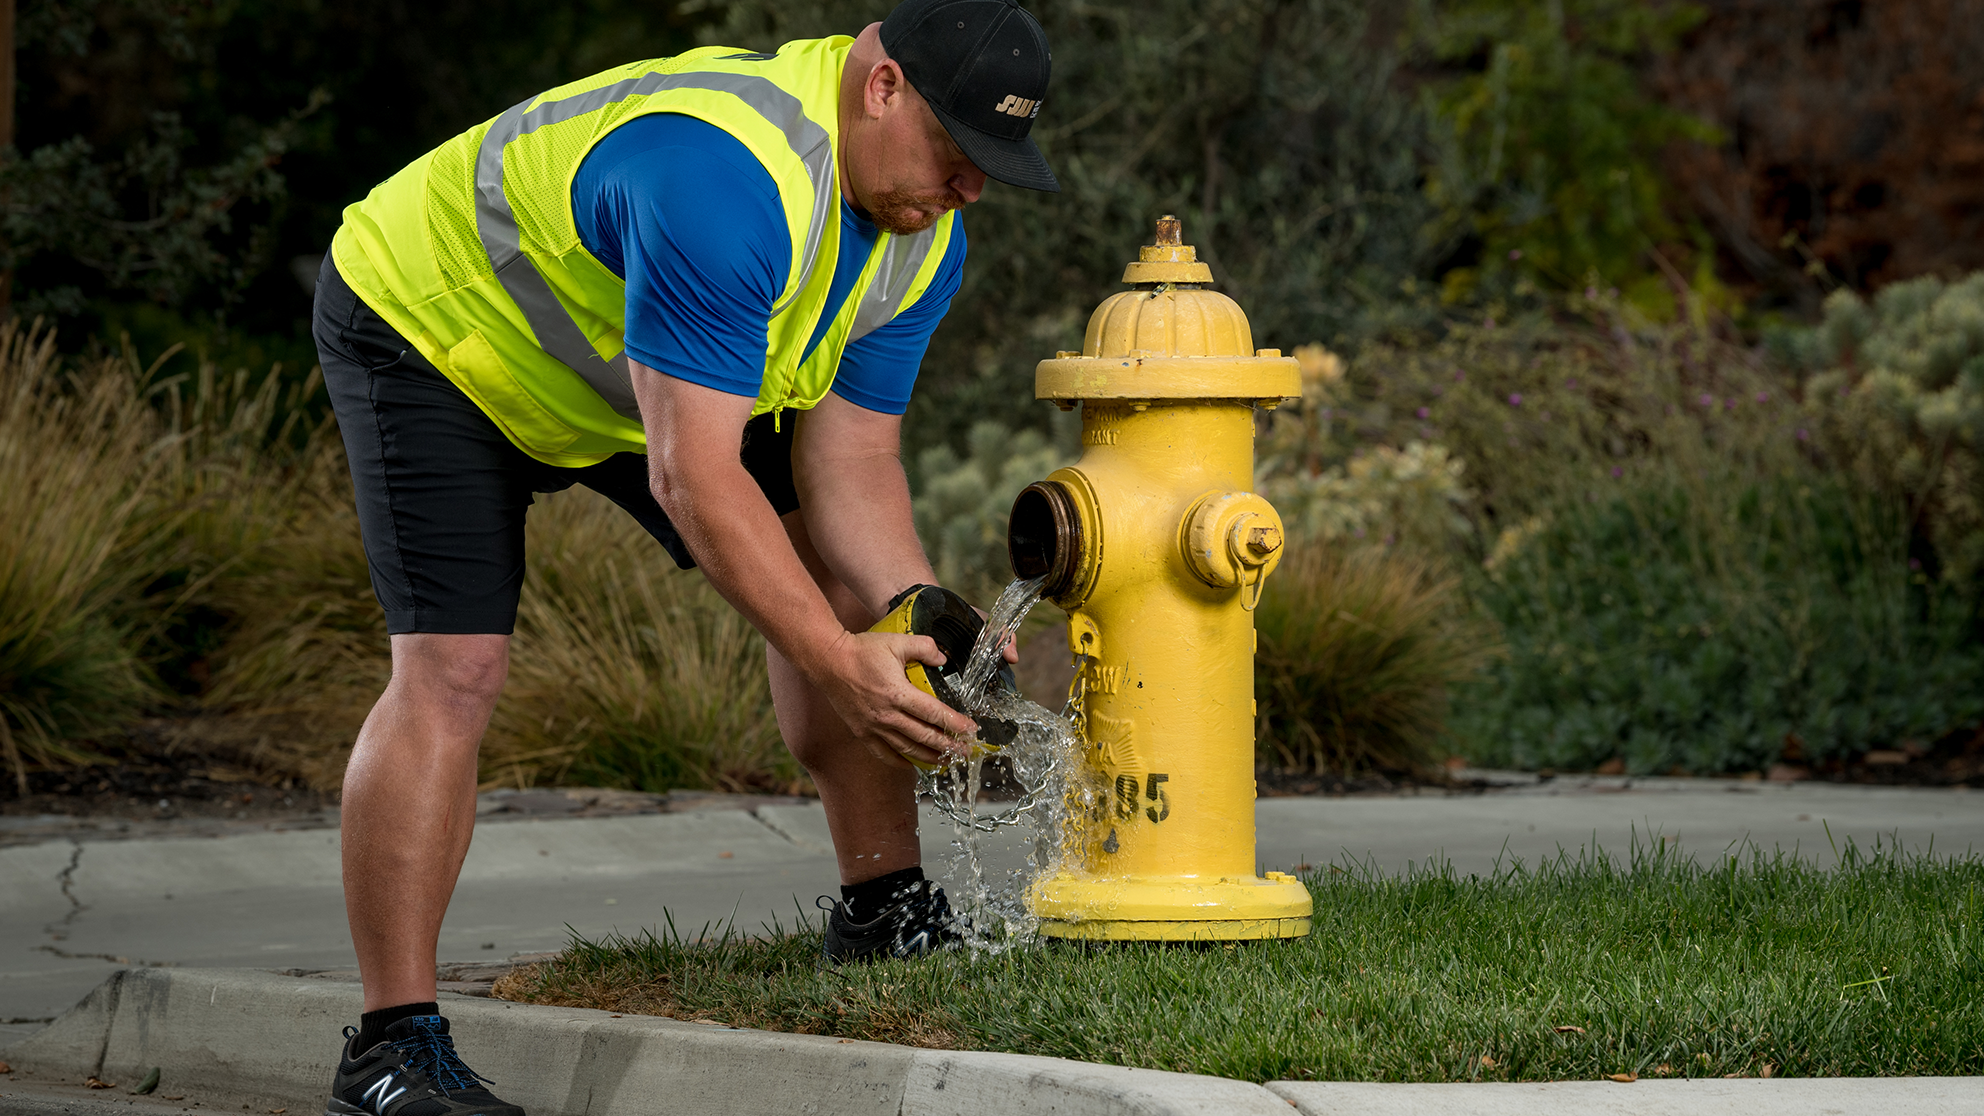 A San Jose Water employee removing the cap of a fire hydrant as some water leaks out.